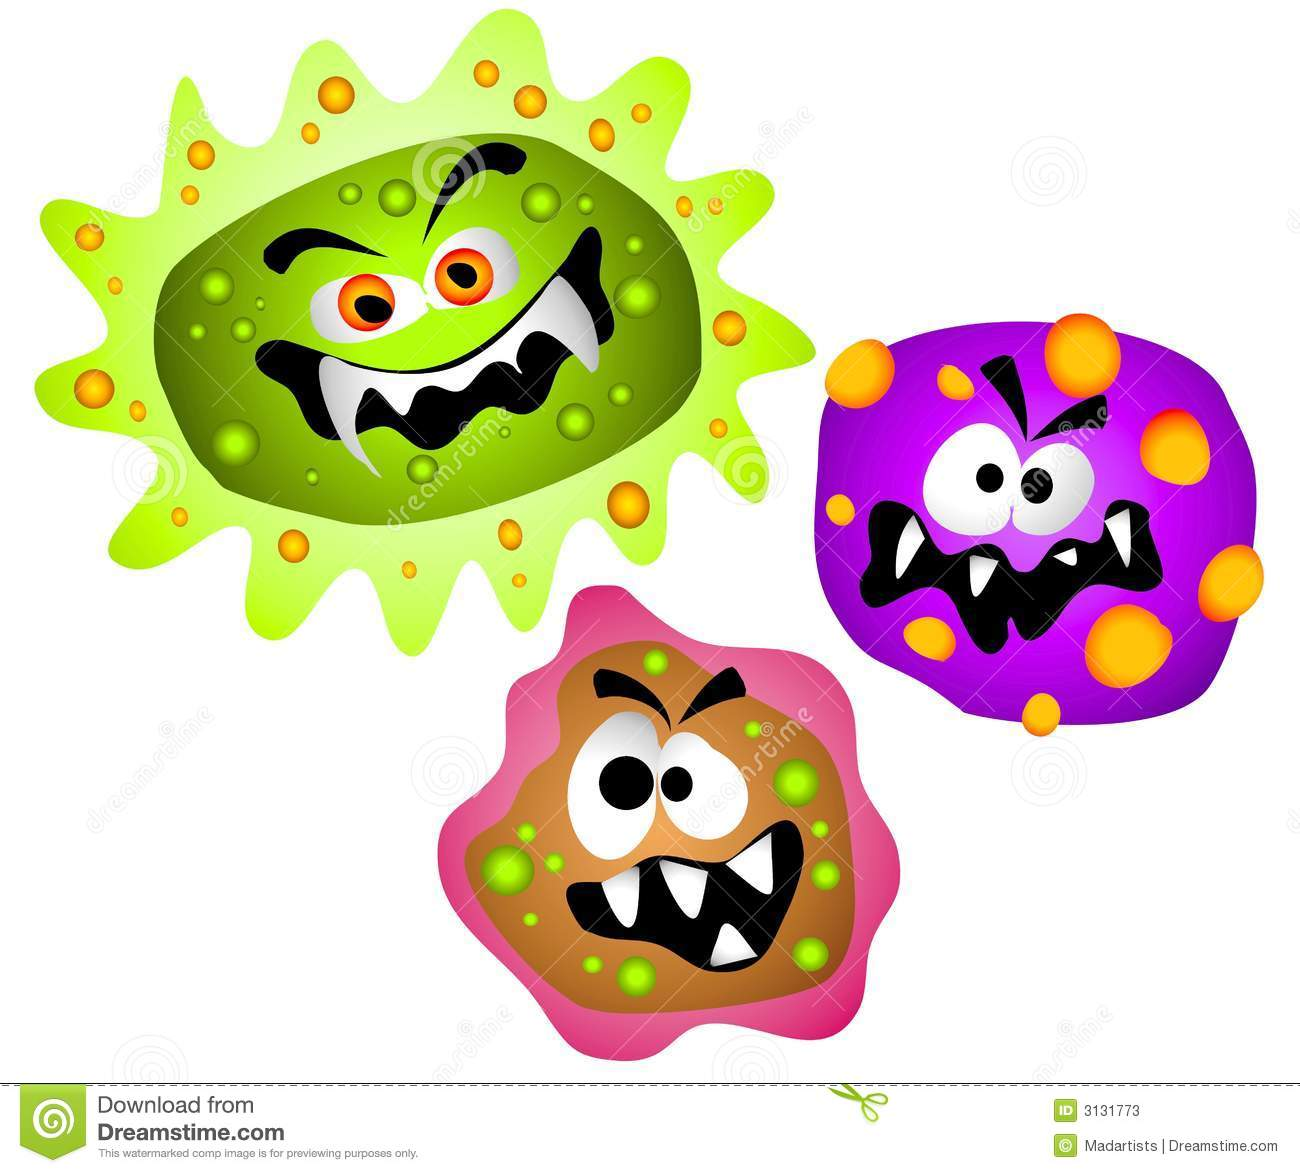 Bacteria Clipart | Clipart Panda - Free Clipart Images